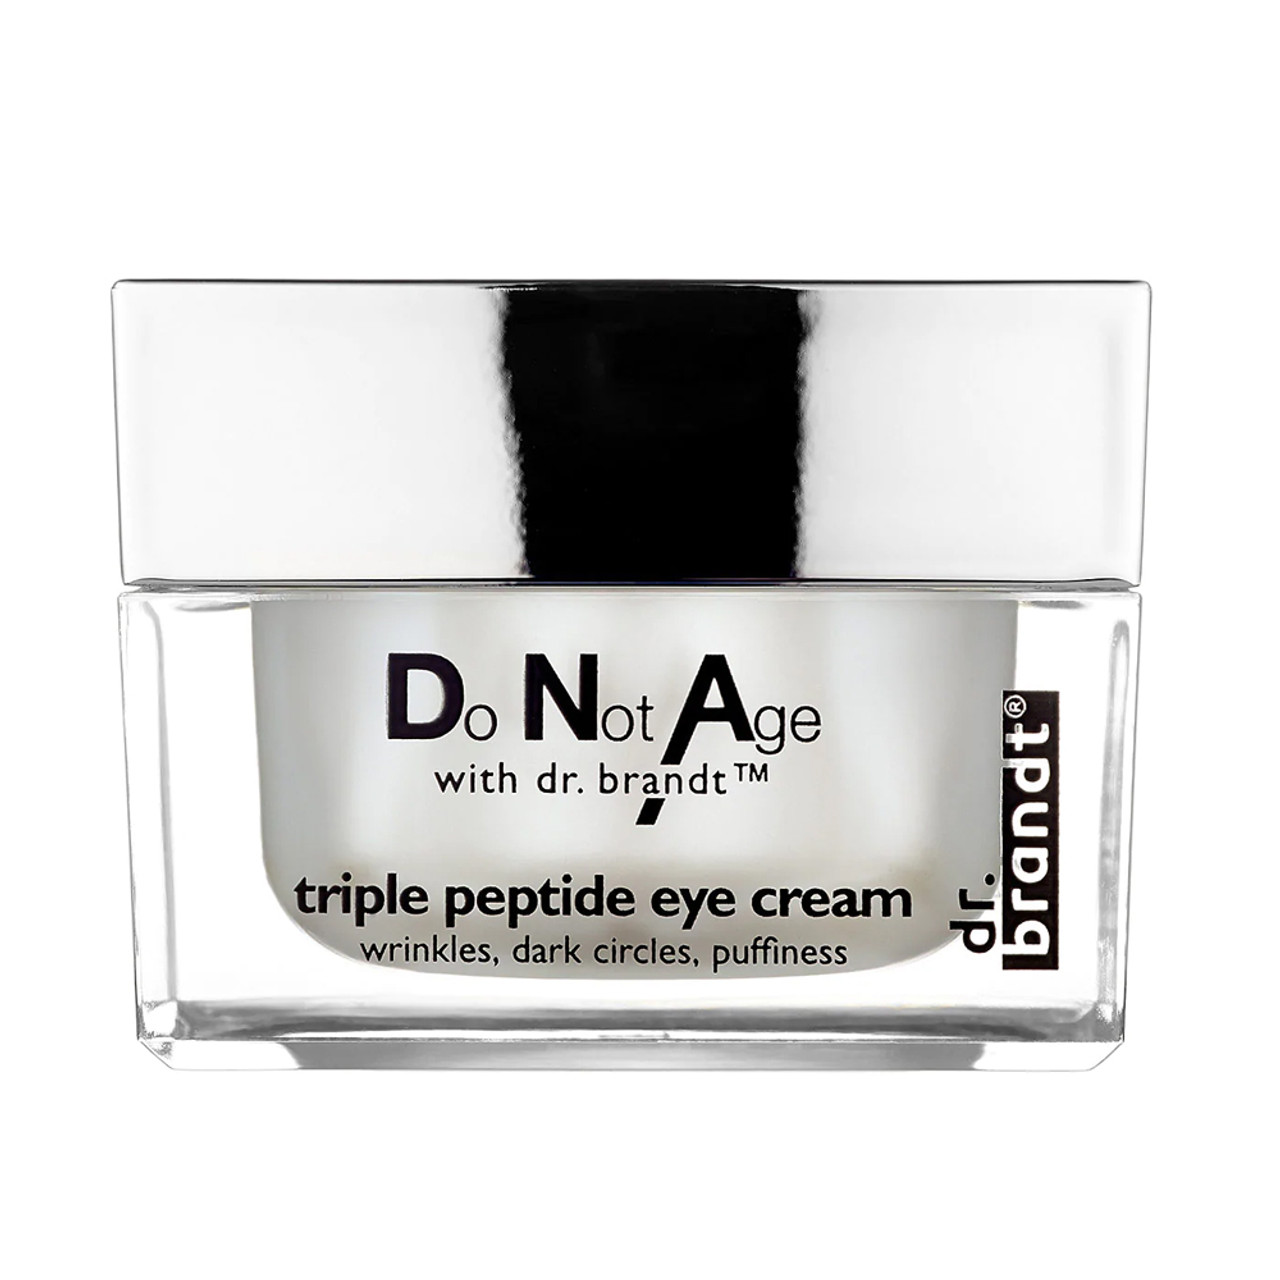 Dr. Brandt Do Not Age Triple Peptide Eye Cream